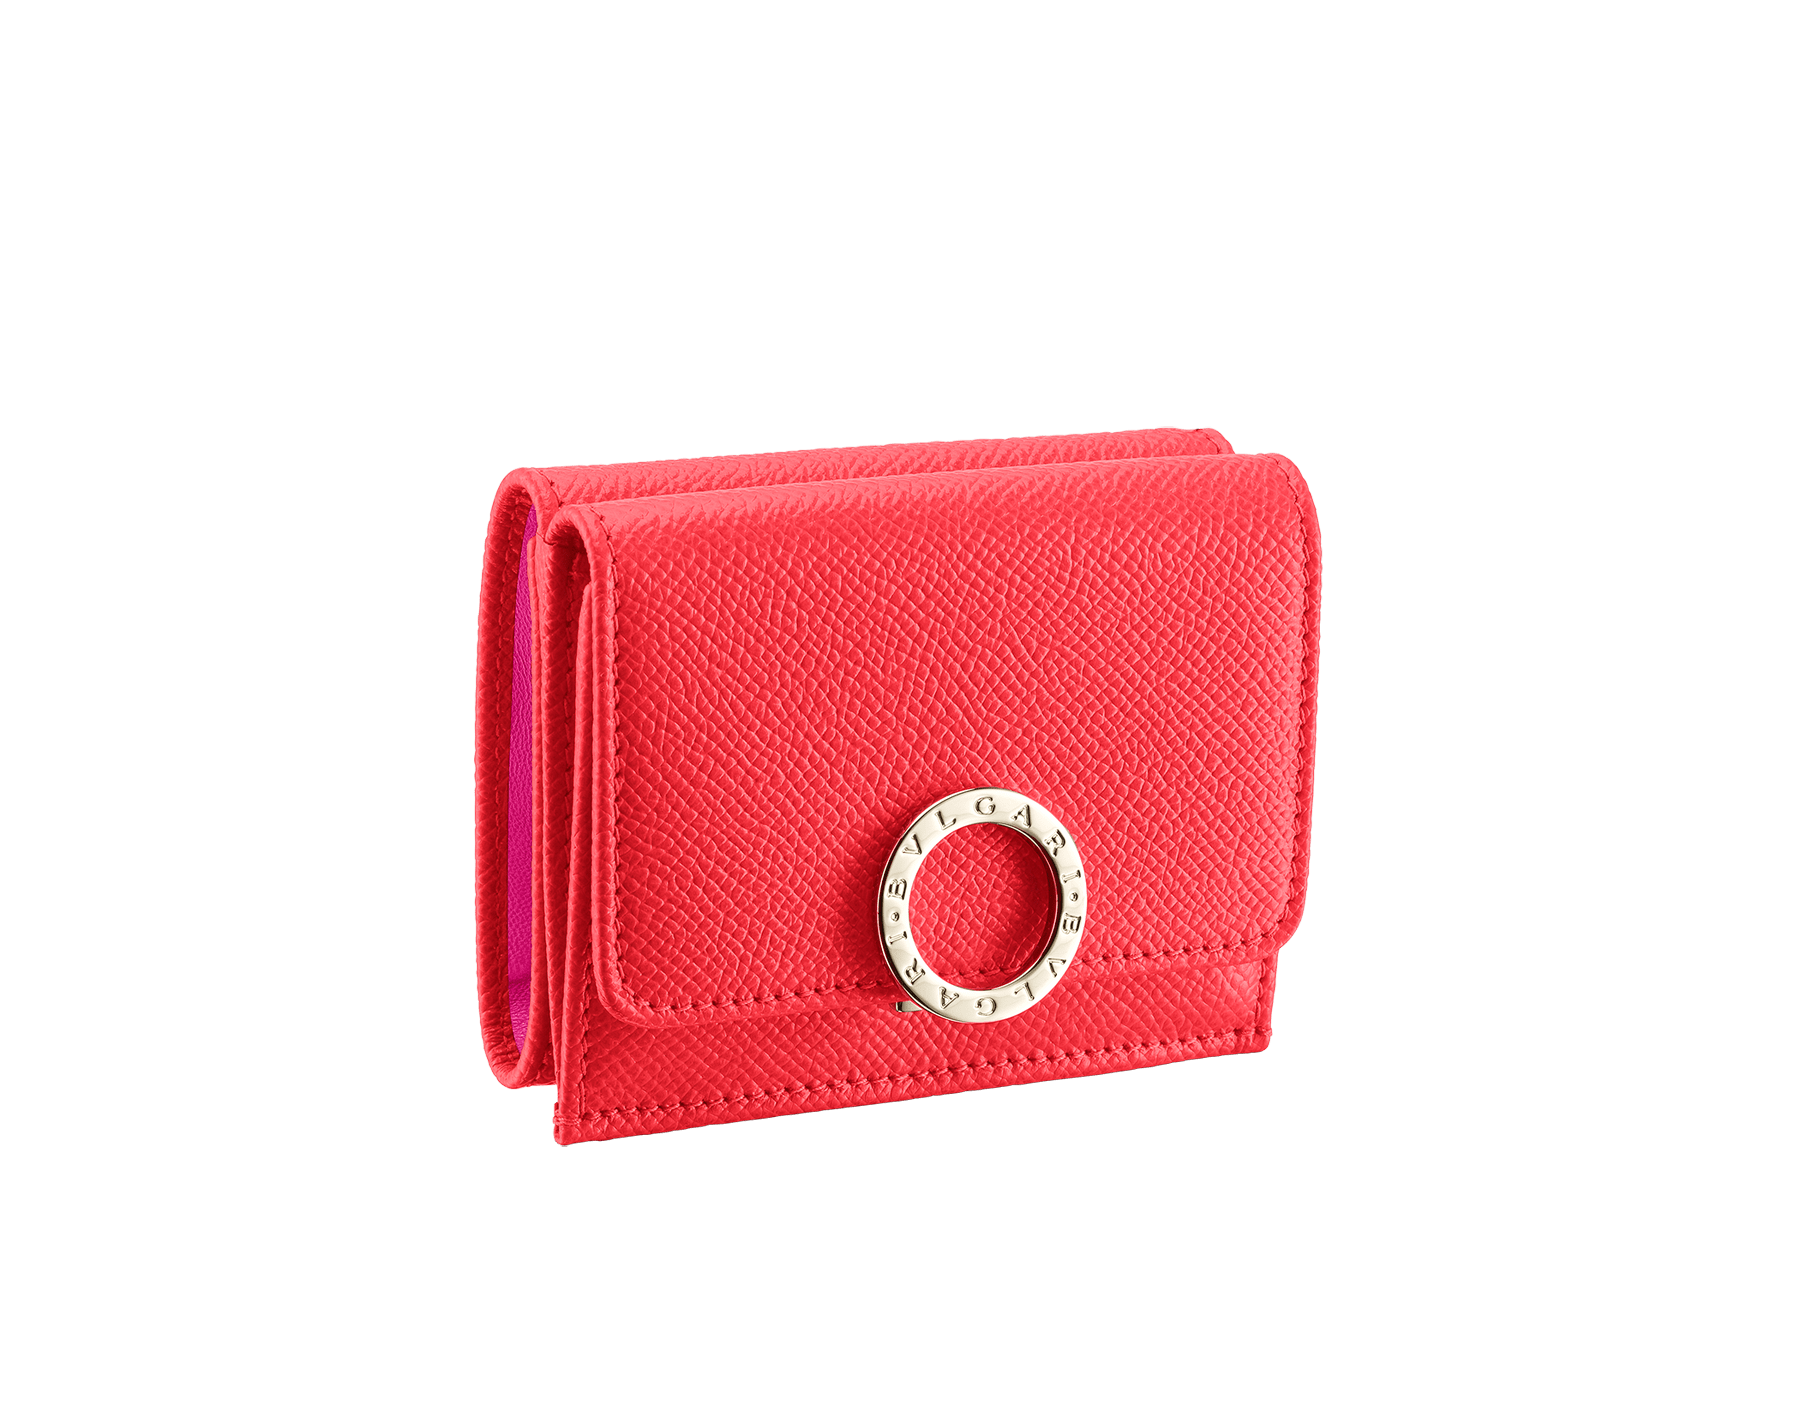 BVLGARI BVLGARI super compact wallet in sea star coral grain calf leather and pink spinel nappa leather. Iconic logo closure clip in light gold plated brass. 288651 image 1